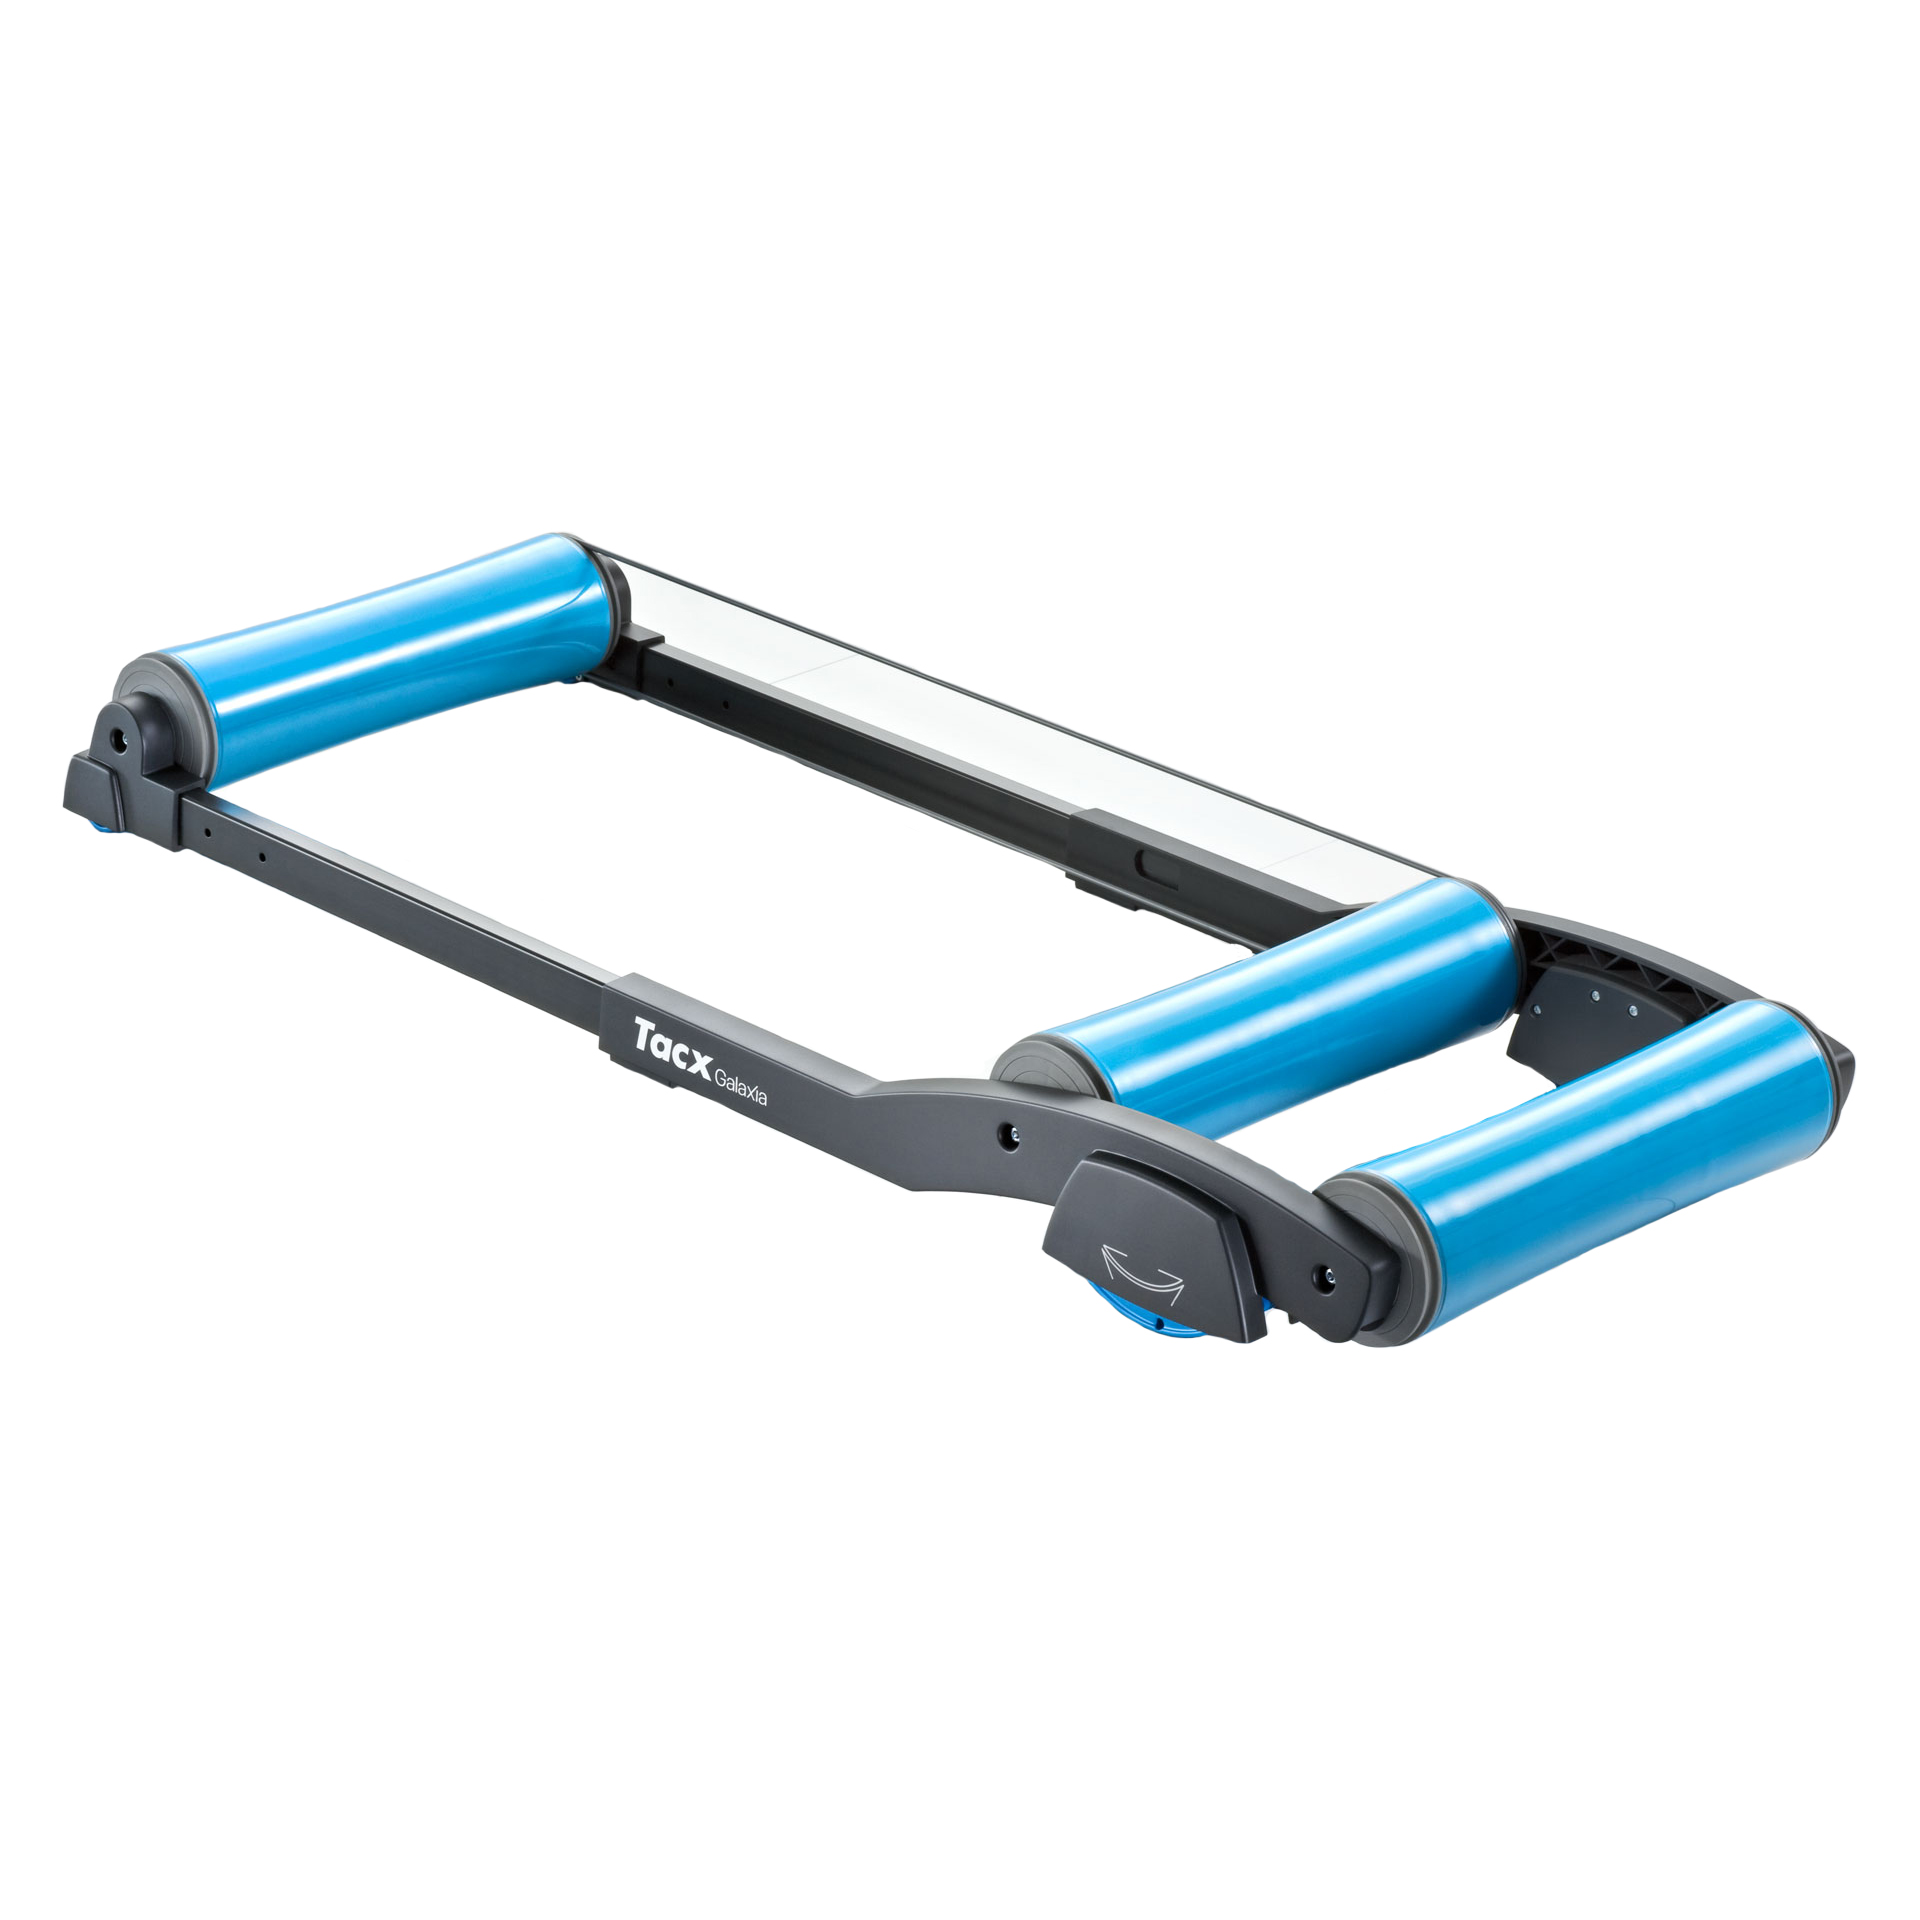 Tacx Велостанок Galaxia Rollers Bike Trainer T1100